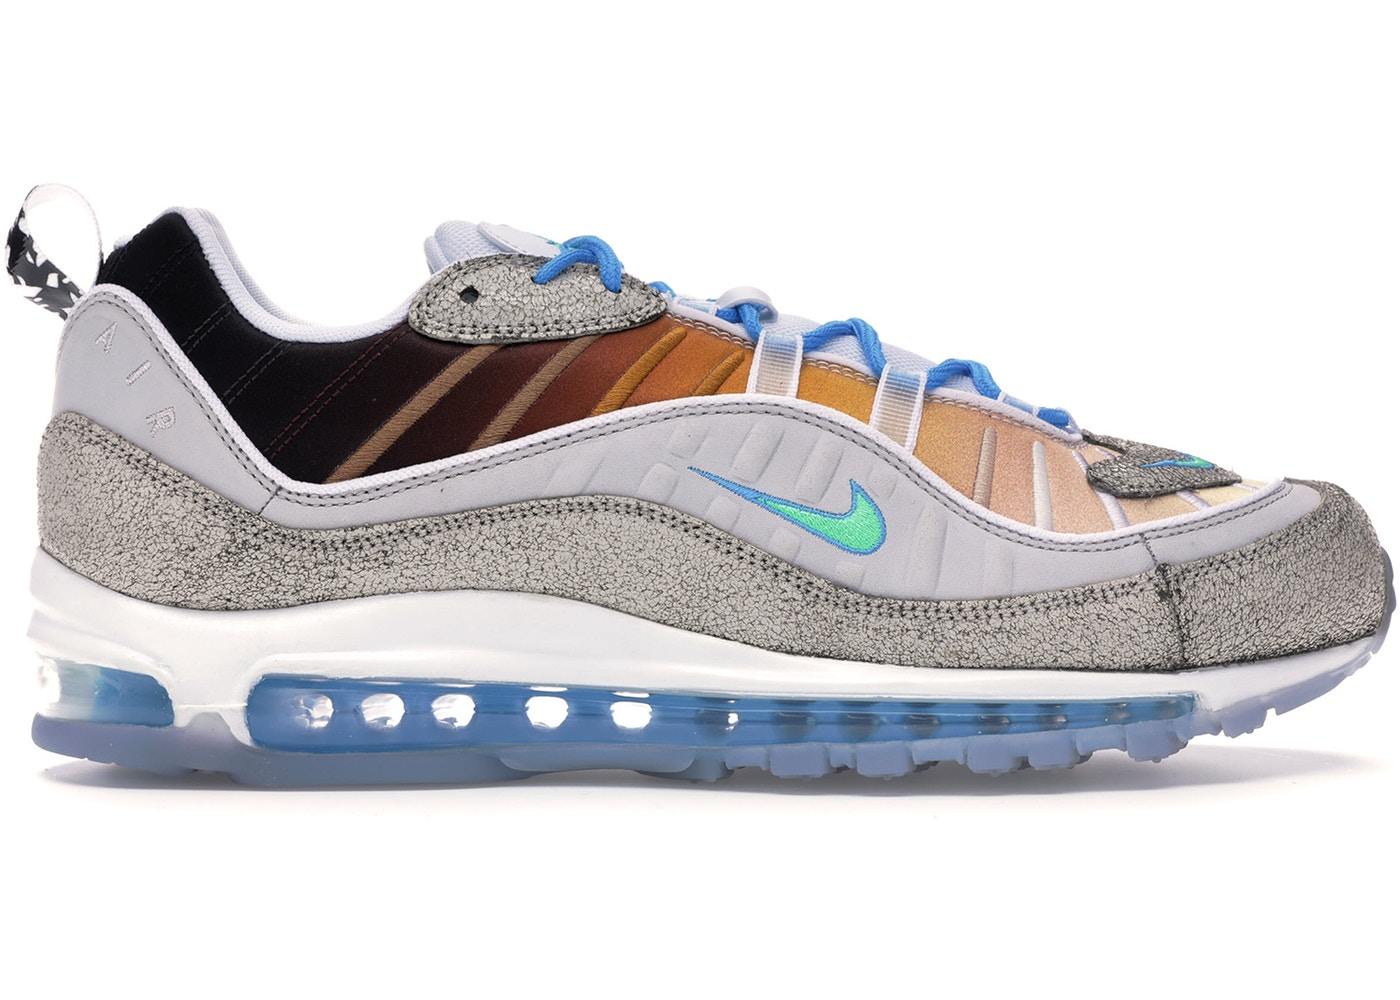 120ff4eab4 On Sale: Nike Air Max 98